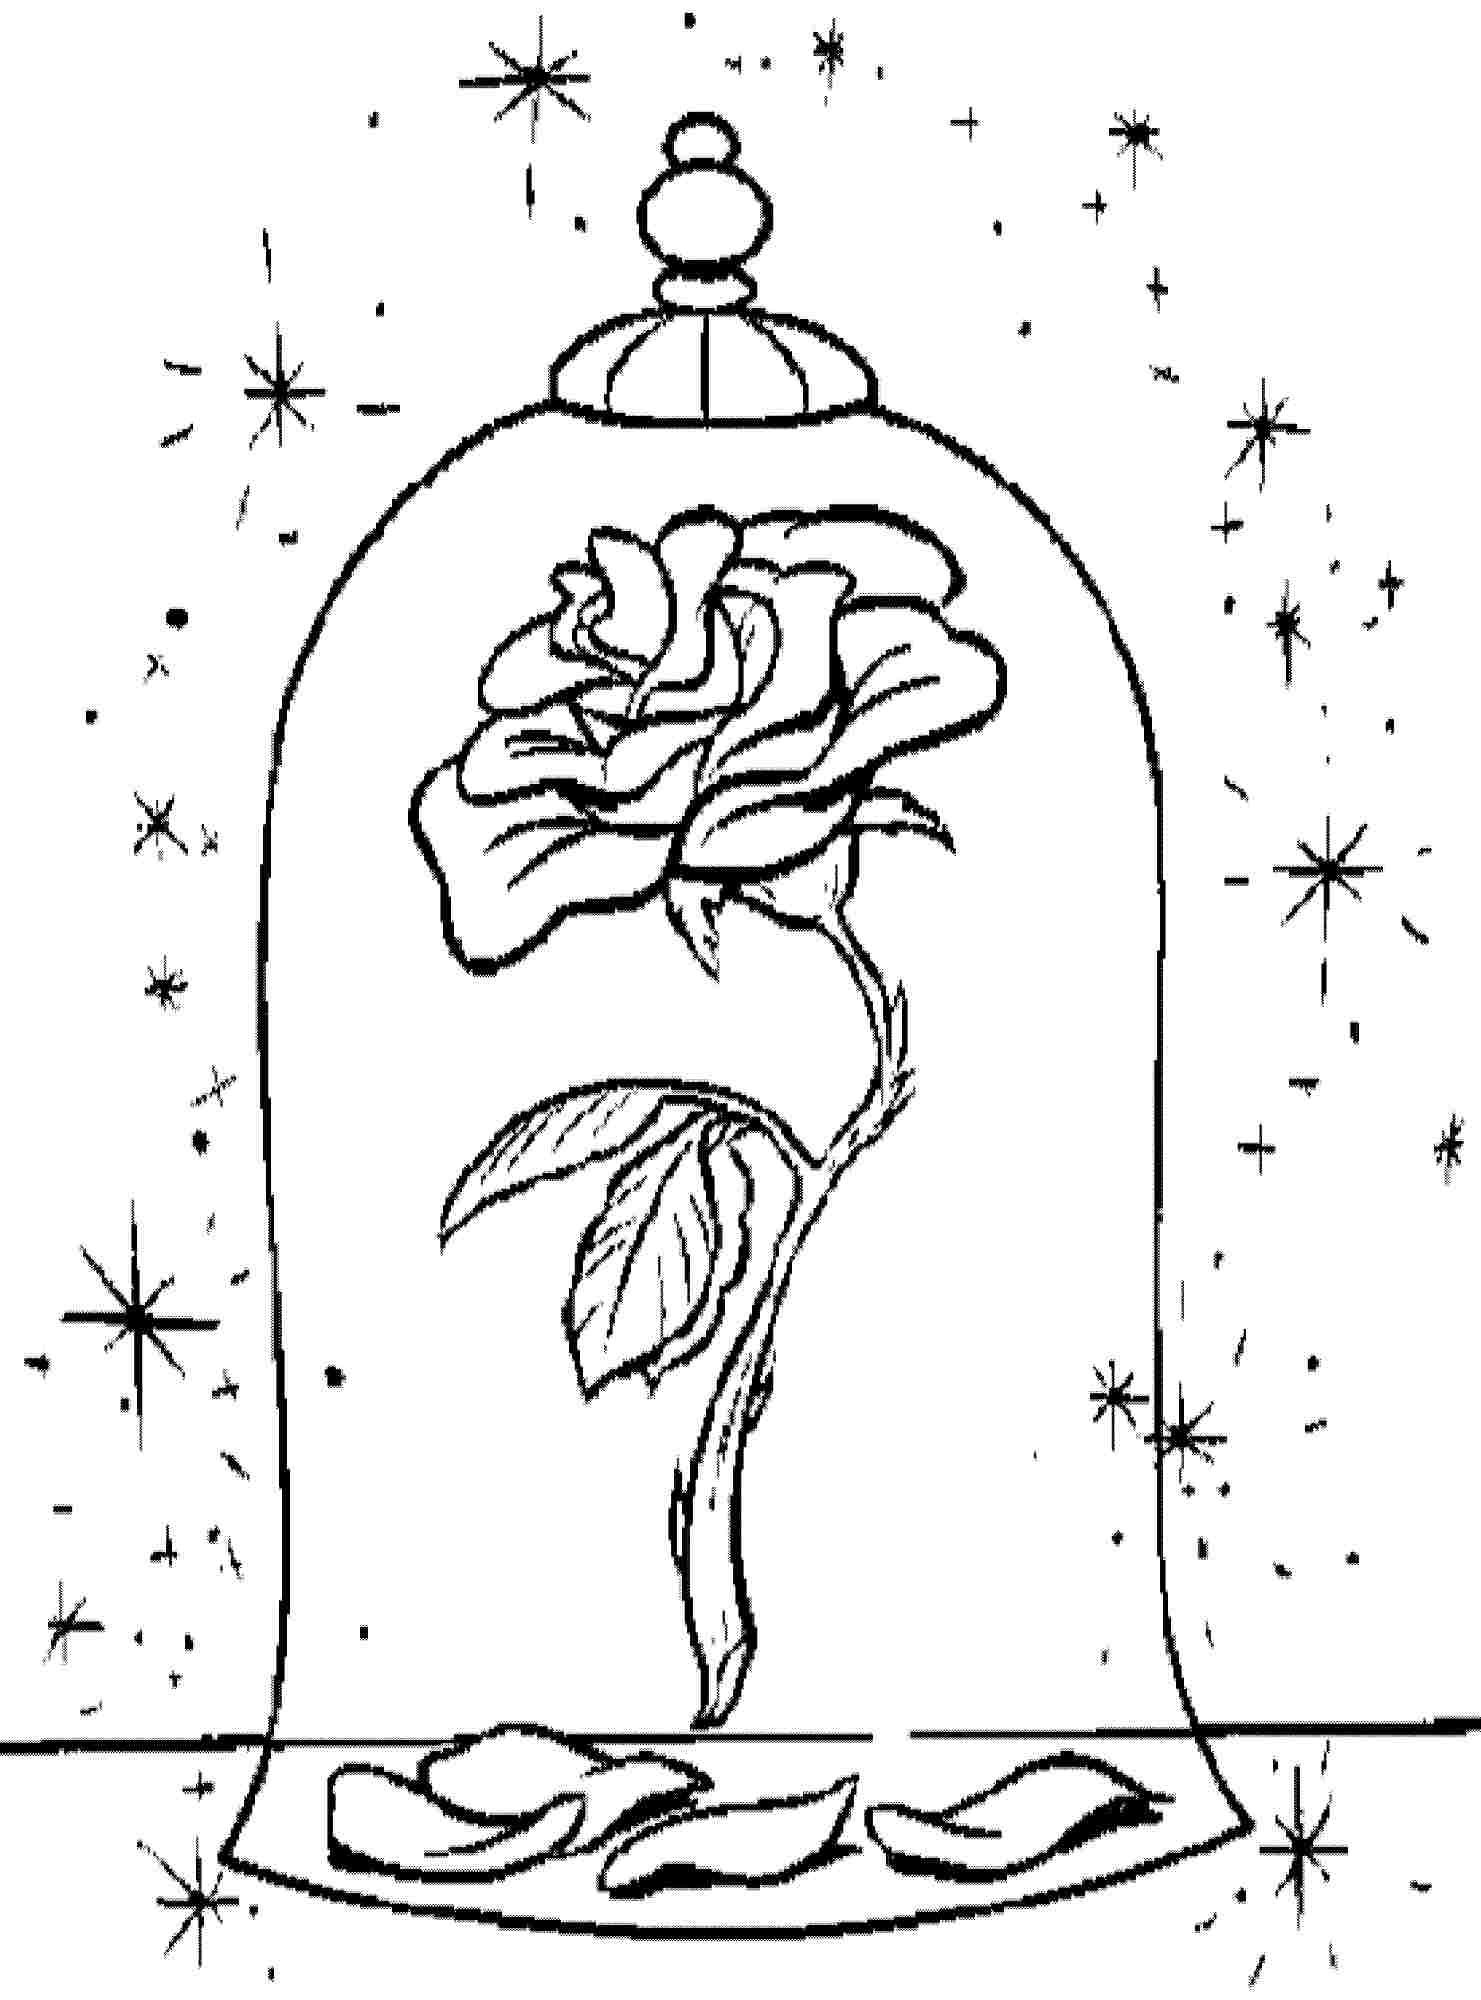 beauty and the beast rose coloring pages beauty beast rose coloring pages print colouring pages coloring beast the pages beauty rose and